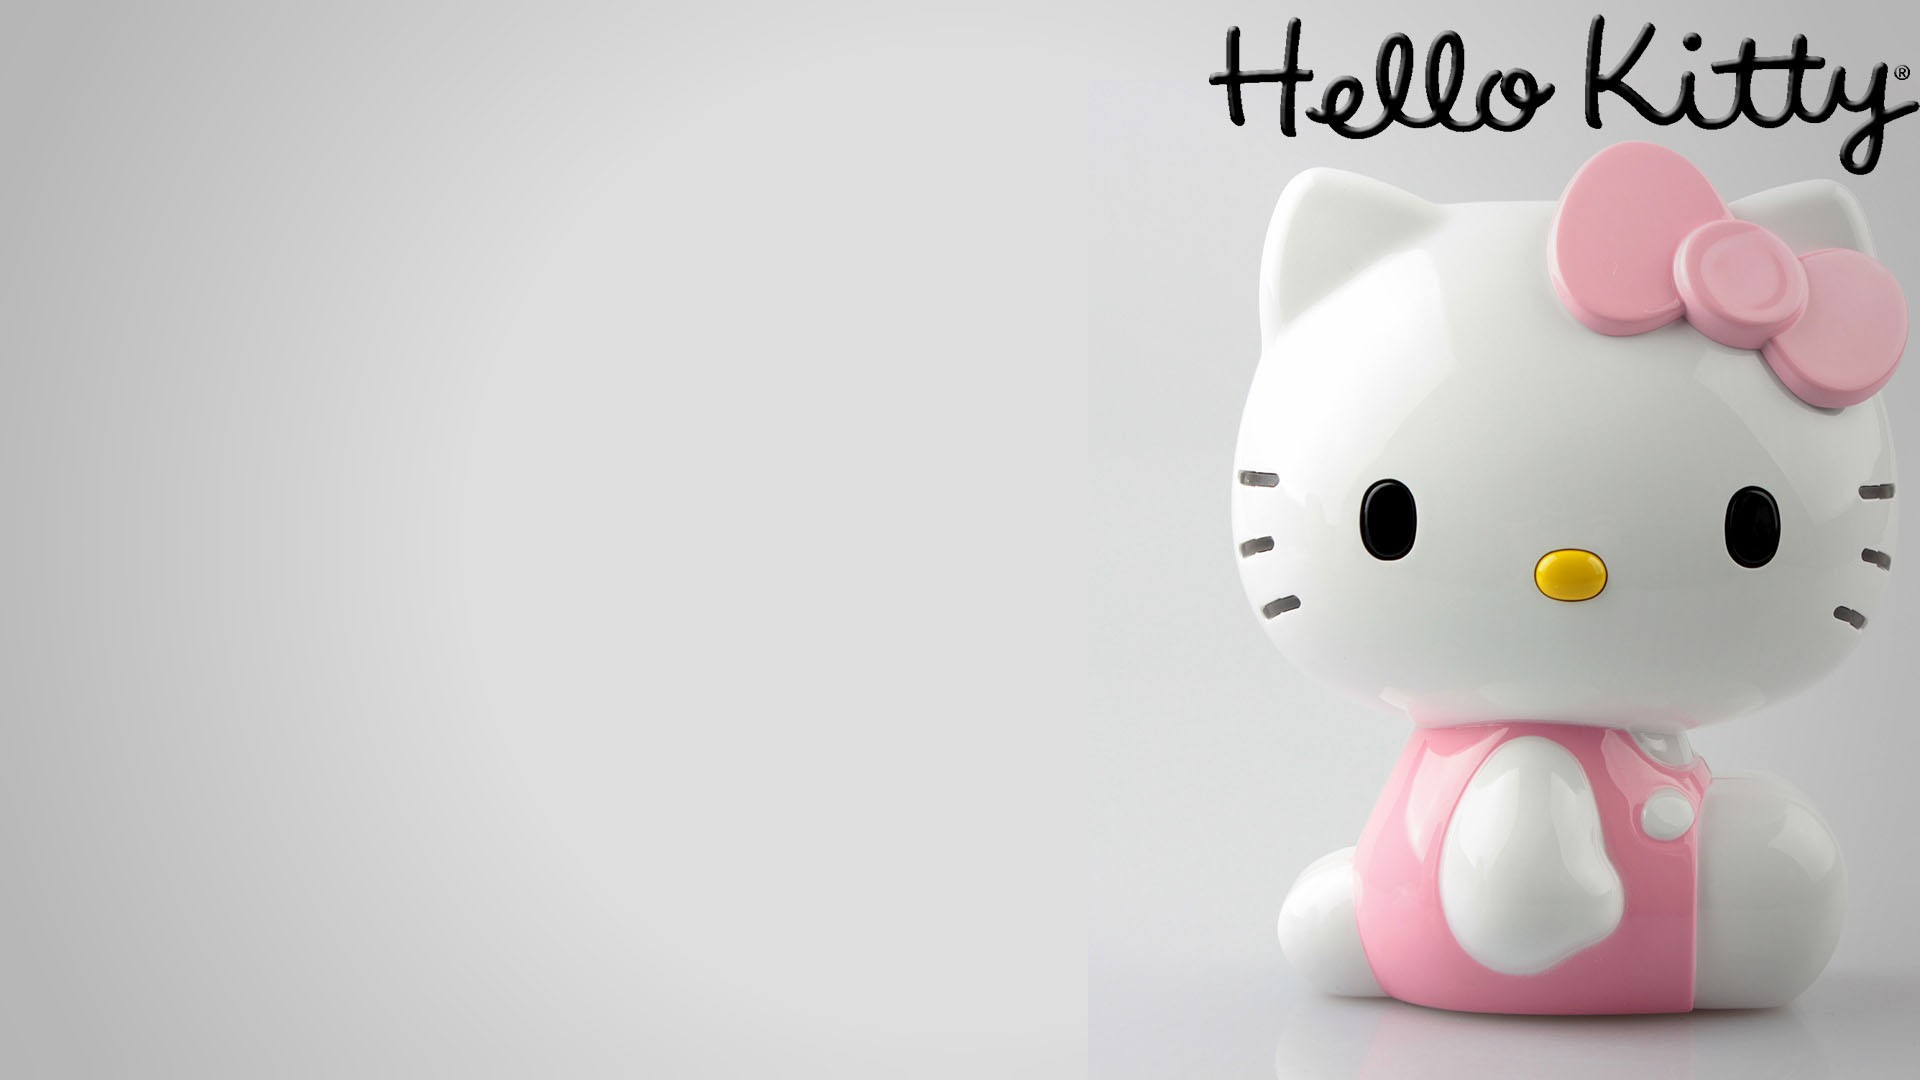 Hello Kitty Wallpapers Images Photos Pictures Backgrounds